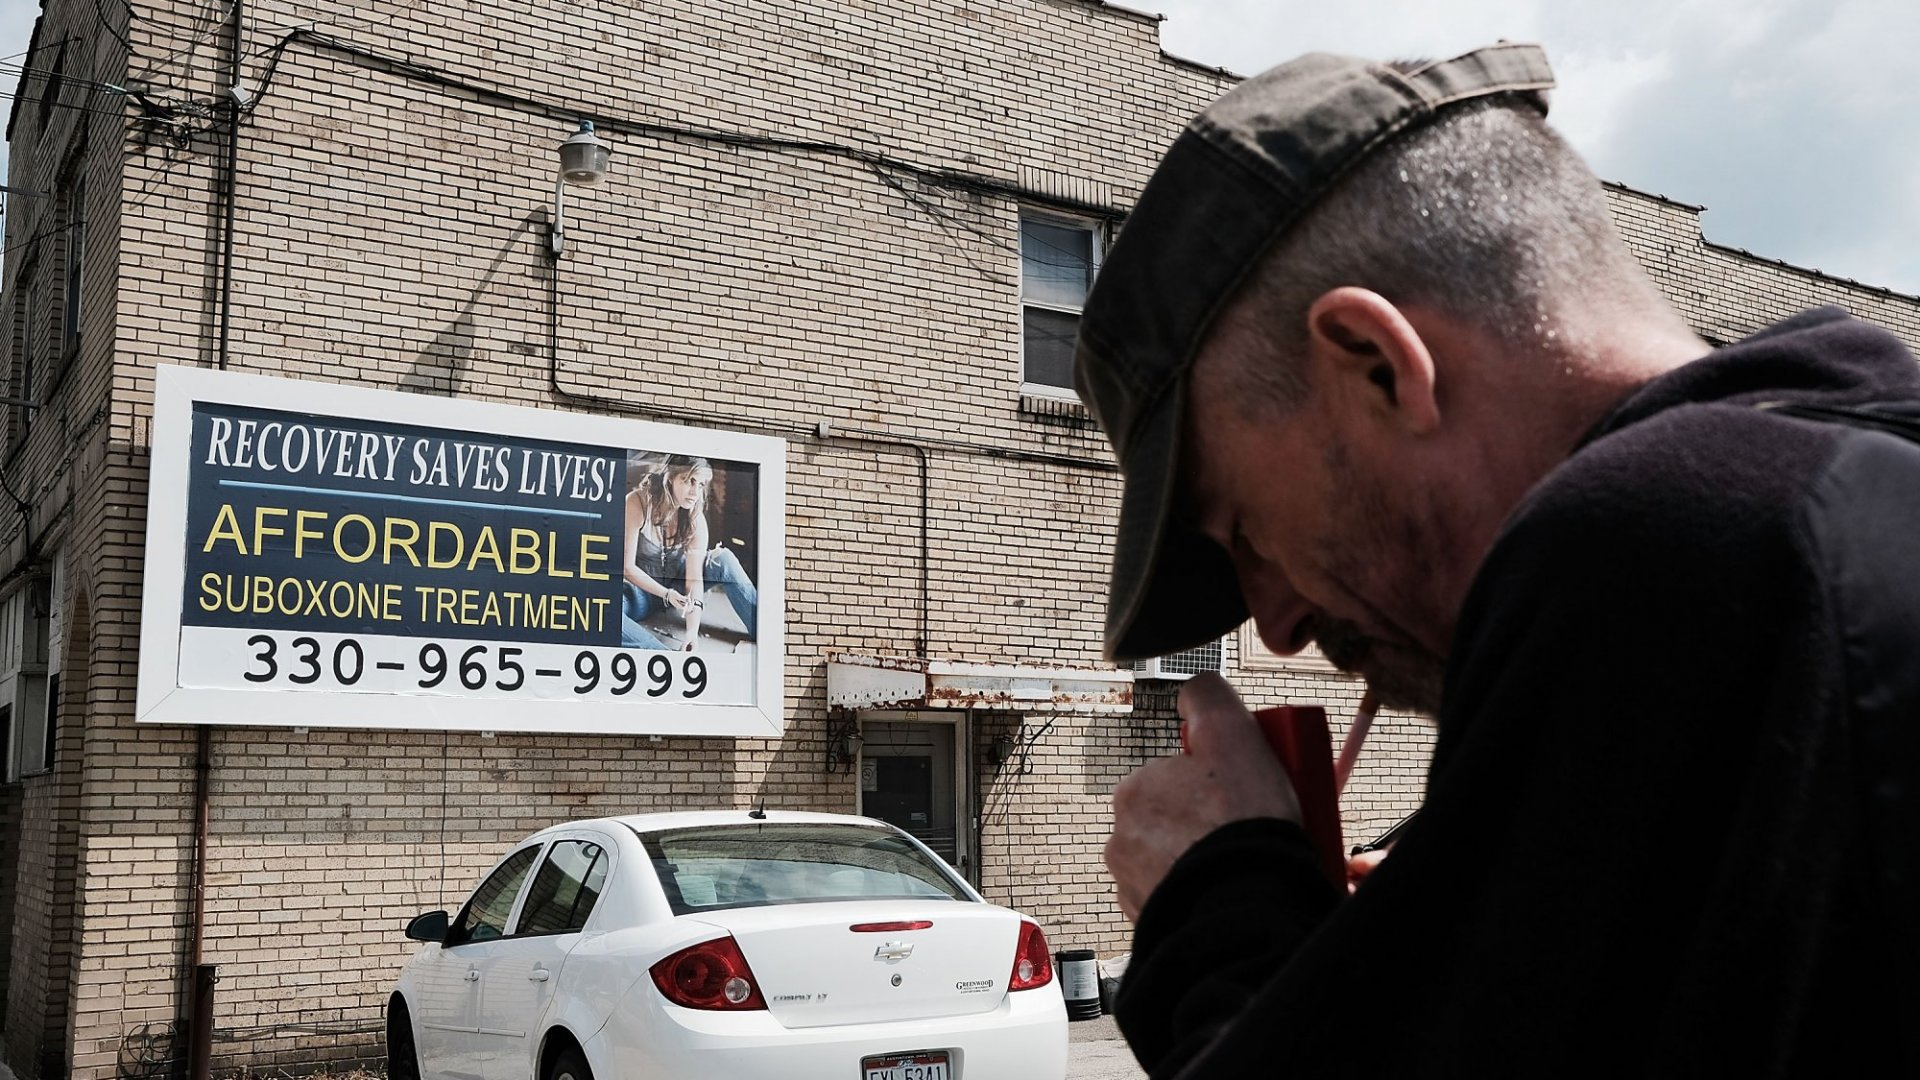 A billboard for drug treatment facility in Youngstown, Ohio.